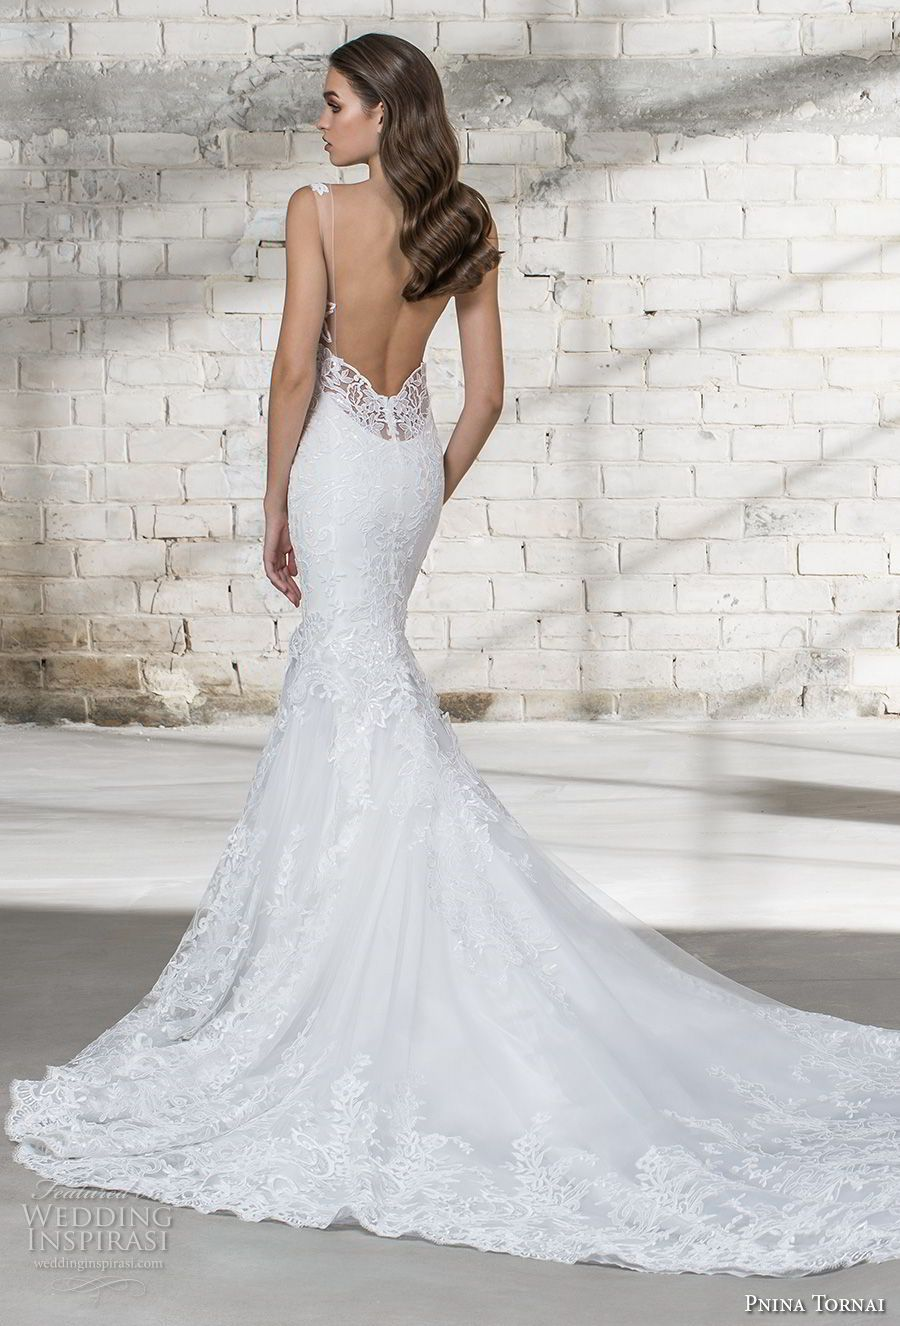 To acquire Tornai pnina wedding dresses mermaid pictures trends